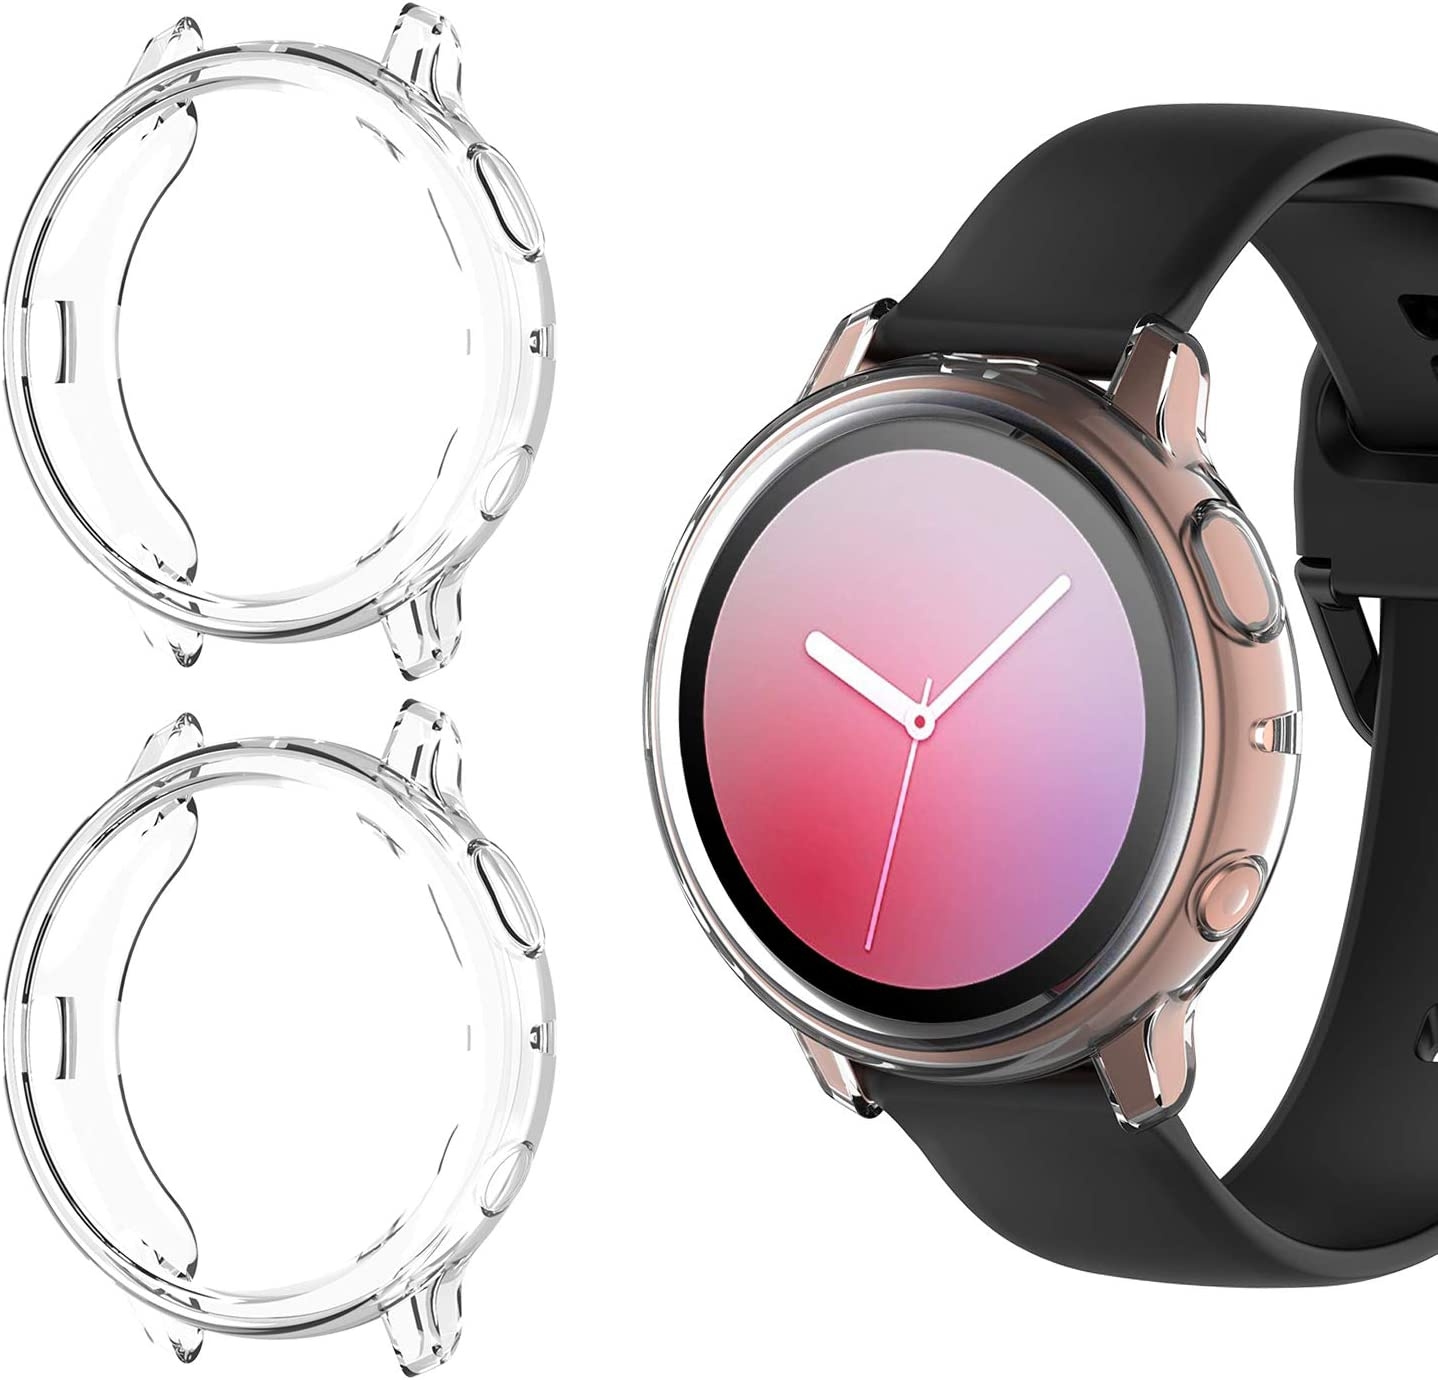 [2 Pack] Case for Samsung Galaxy Active 2 40mm, All-Around TPU Anti-Scratch Flexible Case Soft Protective Bumper Cover for Samsung Galaxy Watch Active ...